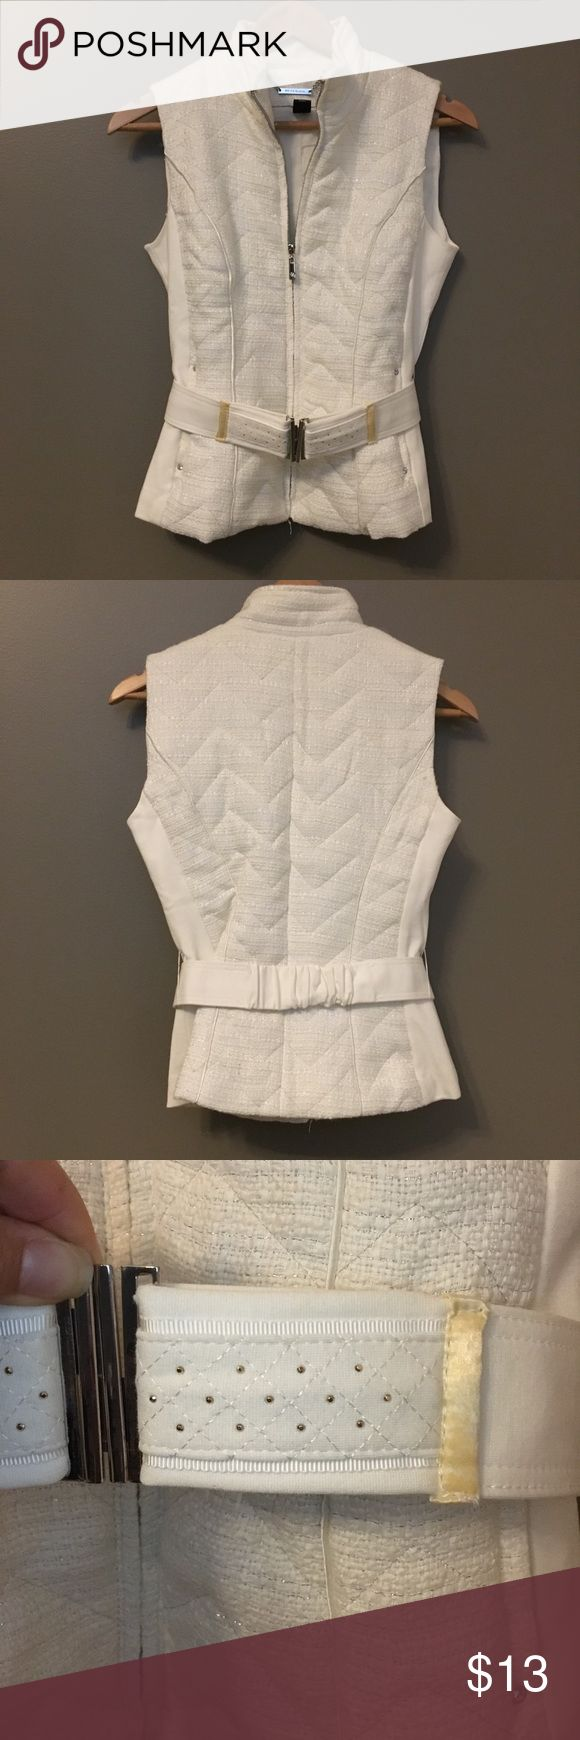 White House Black Market beige vest. Beige vest with slight silver shimmer. Rhinestone accents on vest and belt. Worn once. Slight yellowing of belt. White House Black Market Jackets & Coats